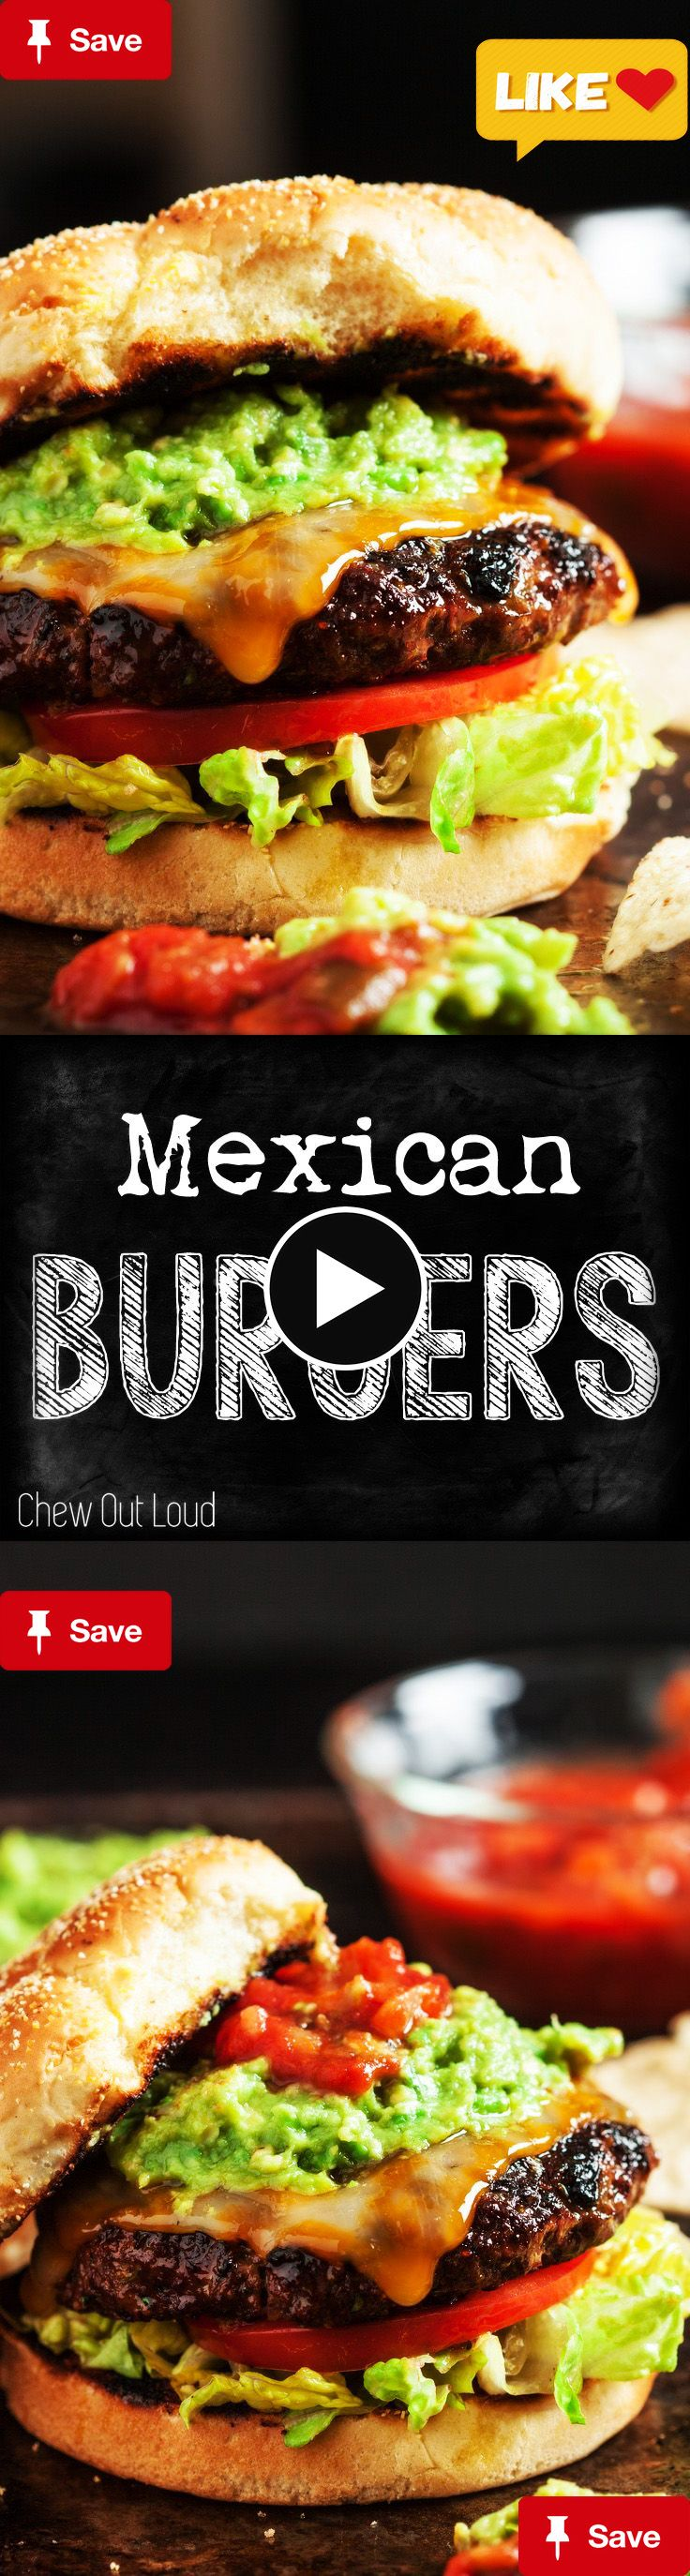 Mexican CheeseburgerMexican Cheeseburgers - Juicy, tender, mouthwatering cheeseburgers. All the flavors are mixed into the meat, so every bite is scrumptious.  this could be a great gift for father's day if he loves burger